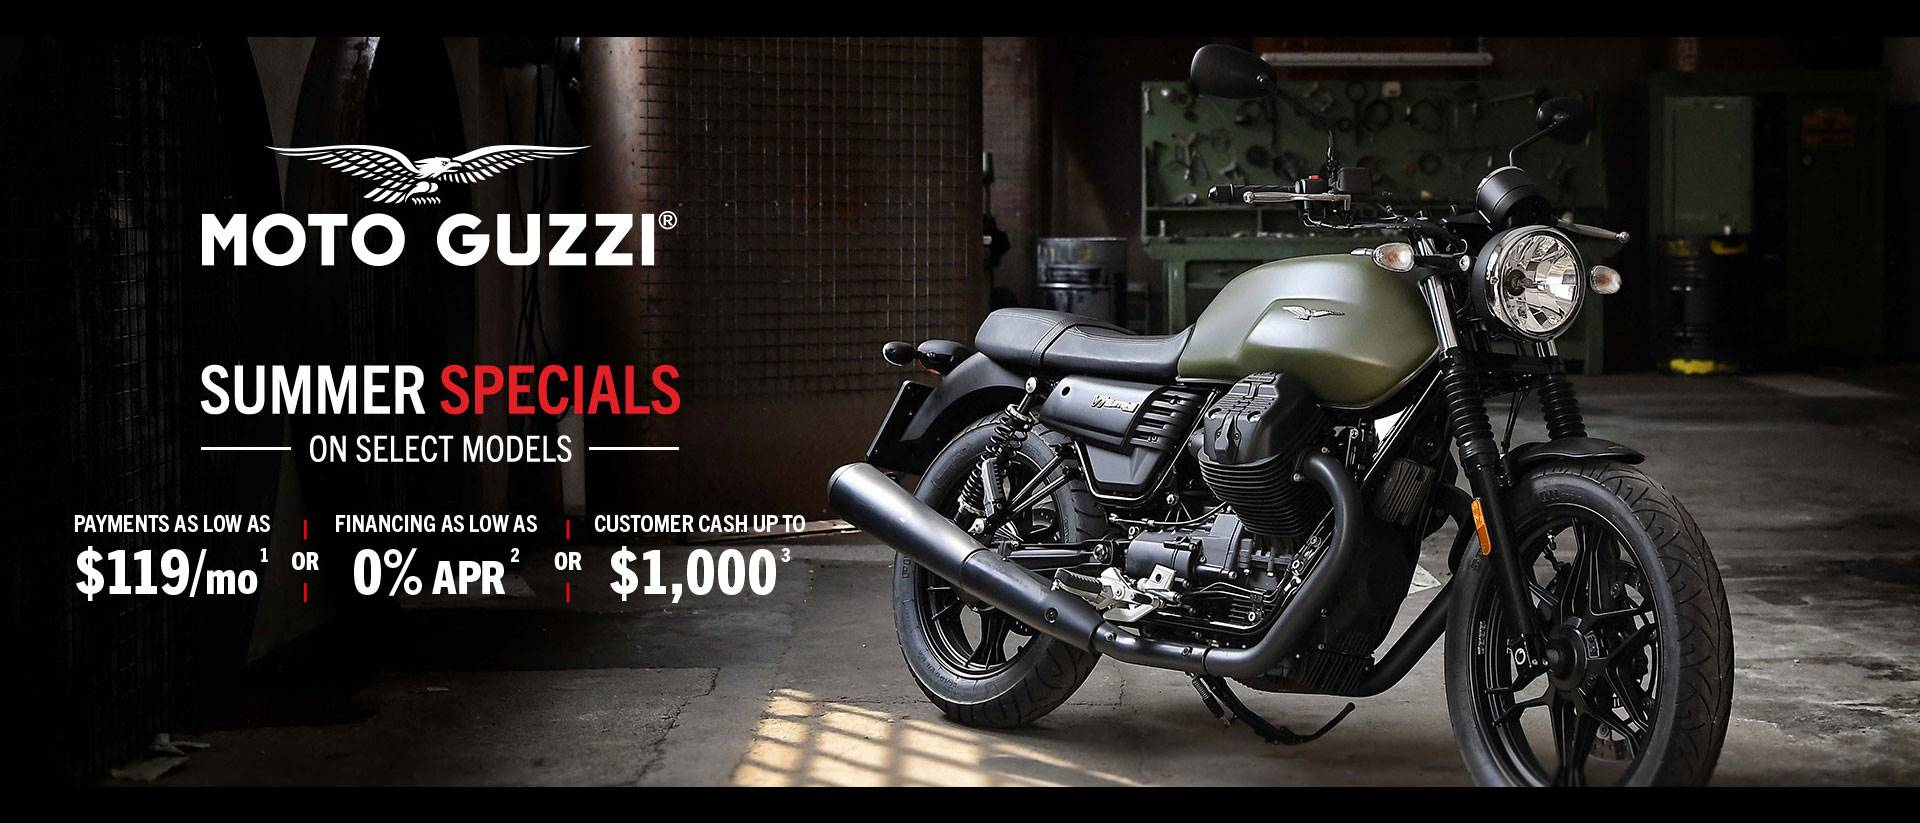 MOTO GUZZI SUMMER SPECIALS